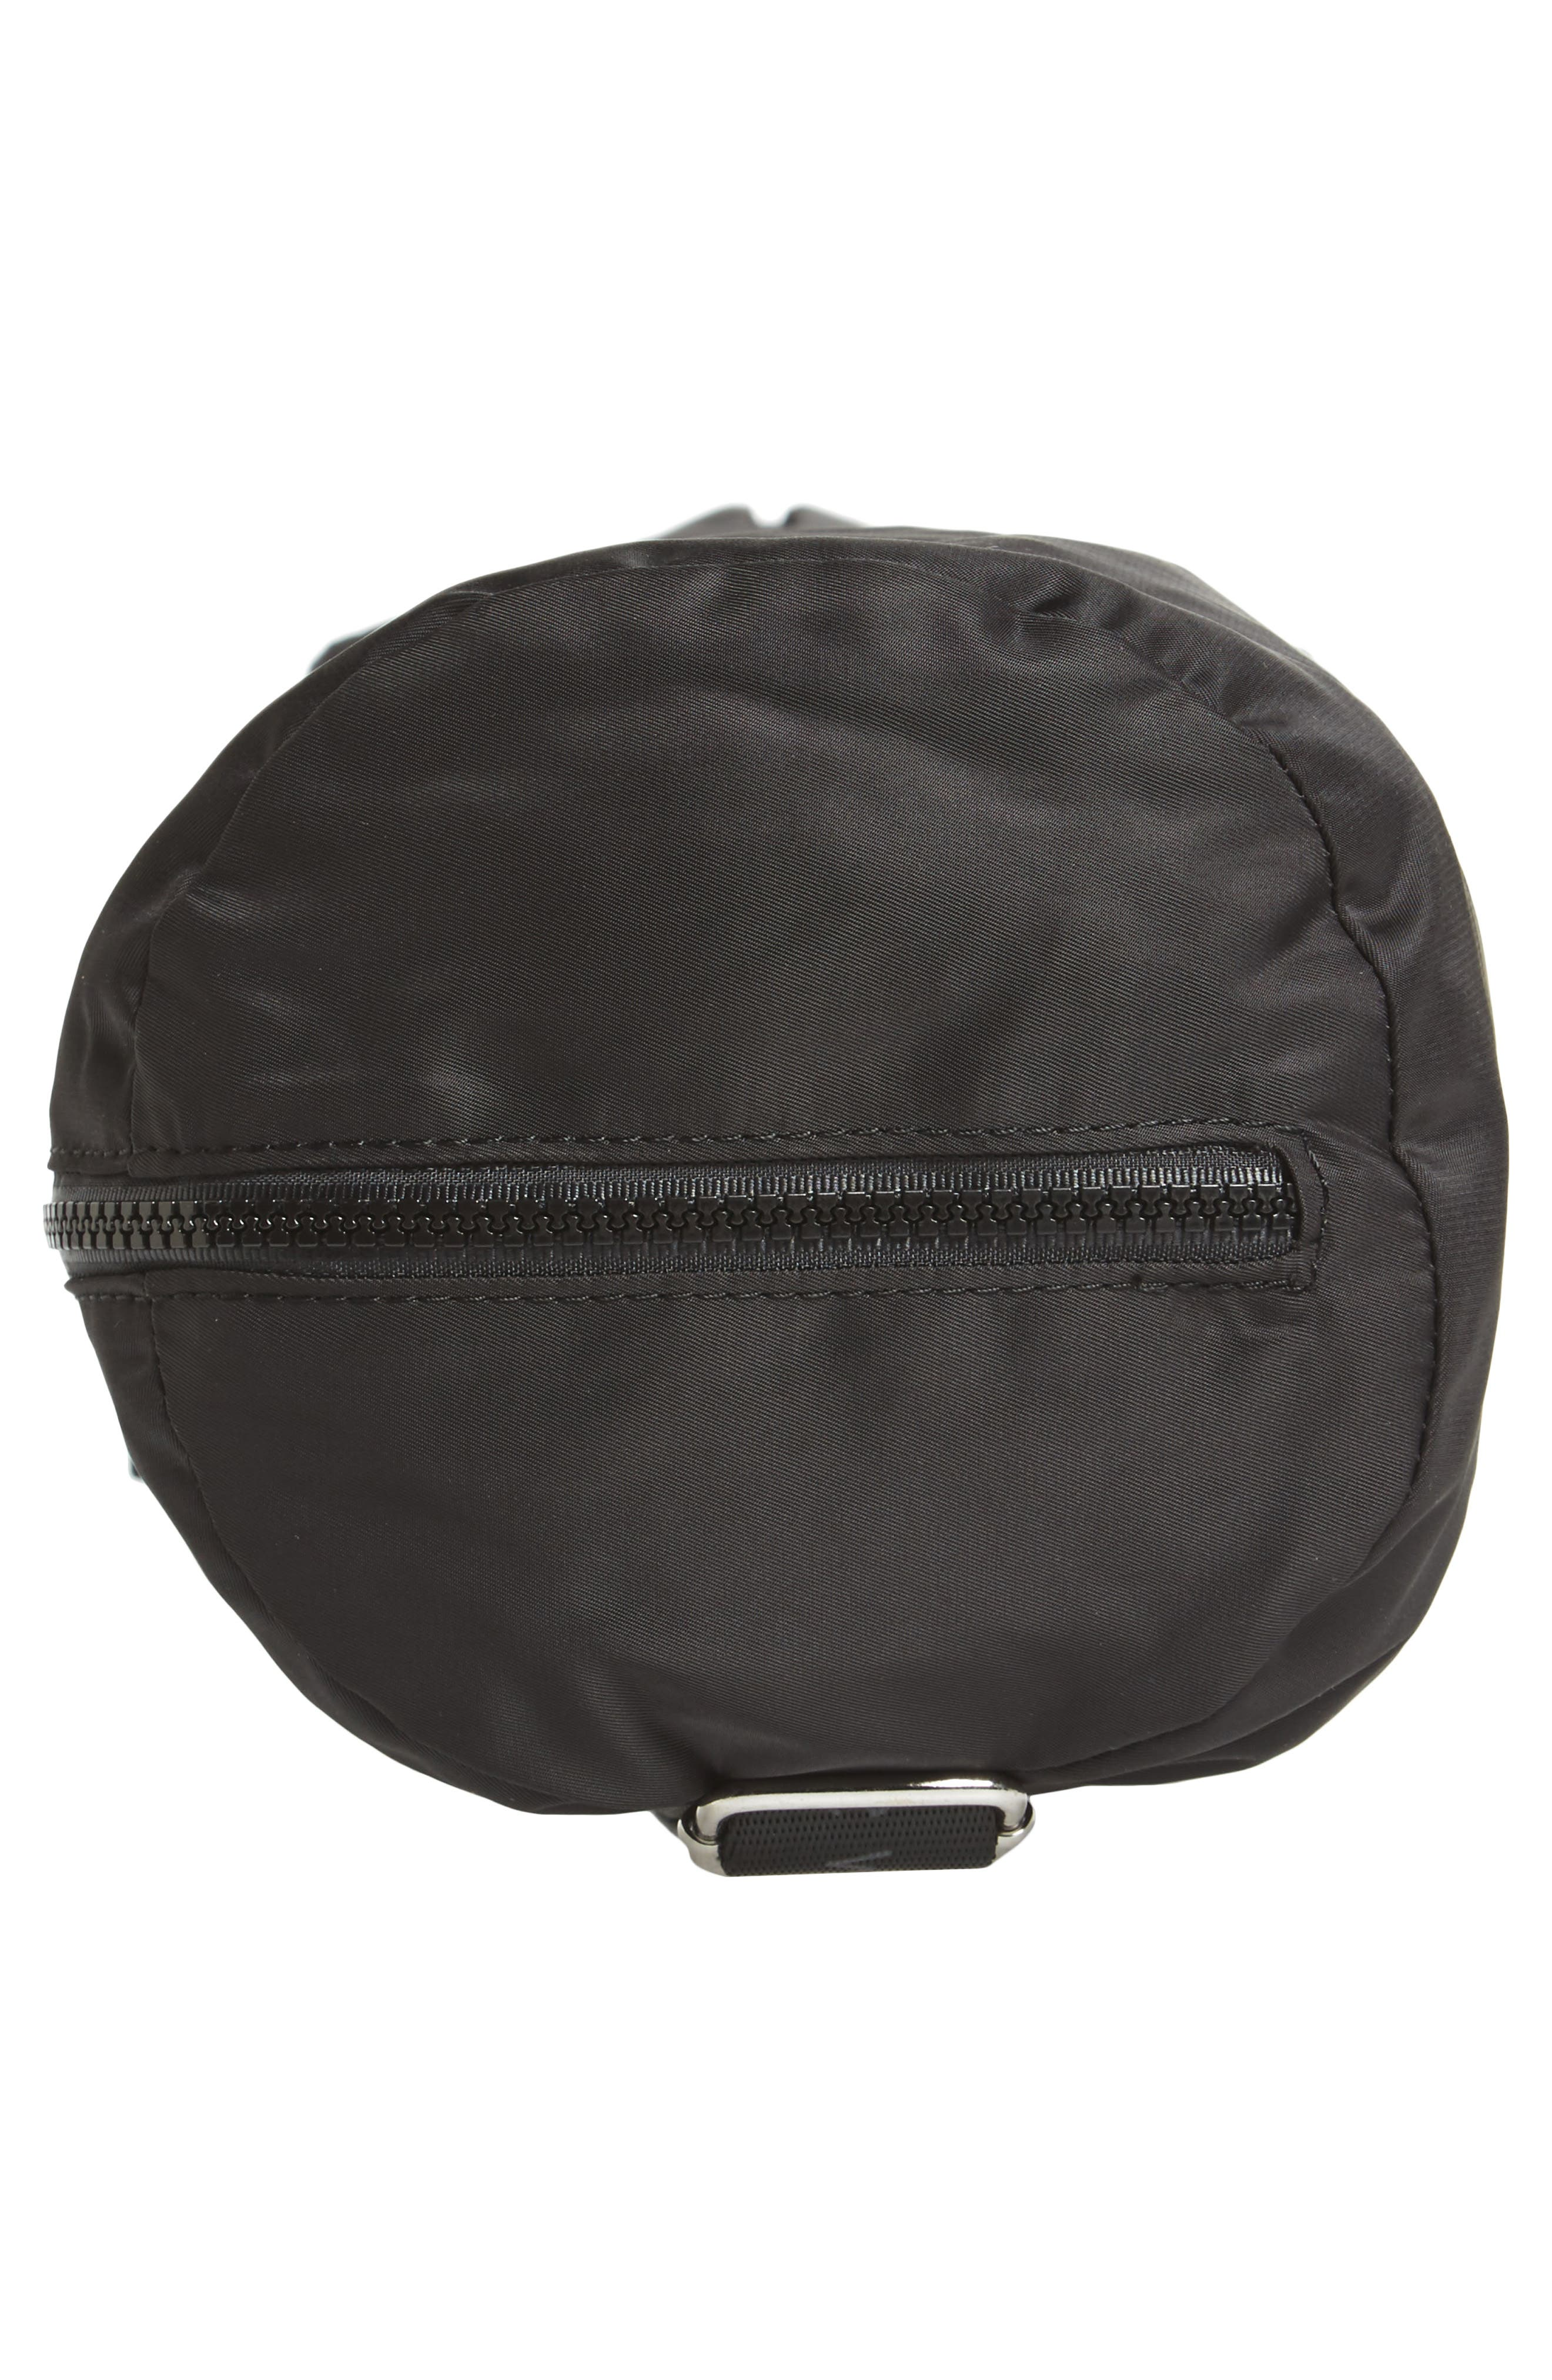 Nylon Yoga Bag,                             Alternate thumbnail 6, color,                             001